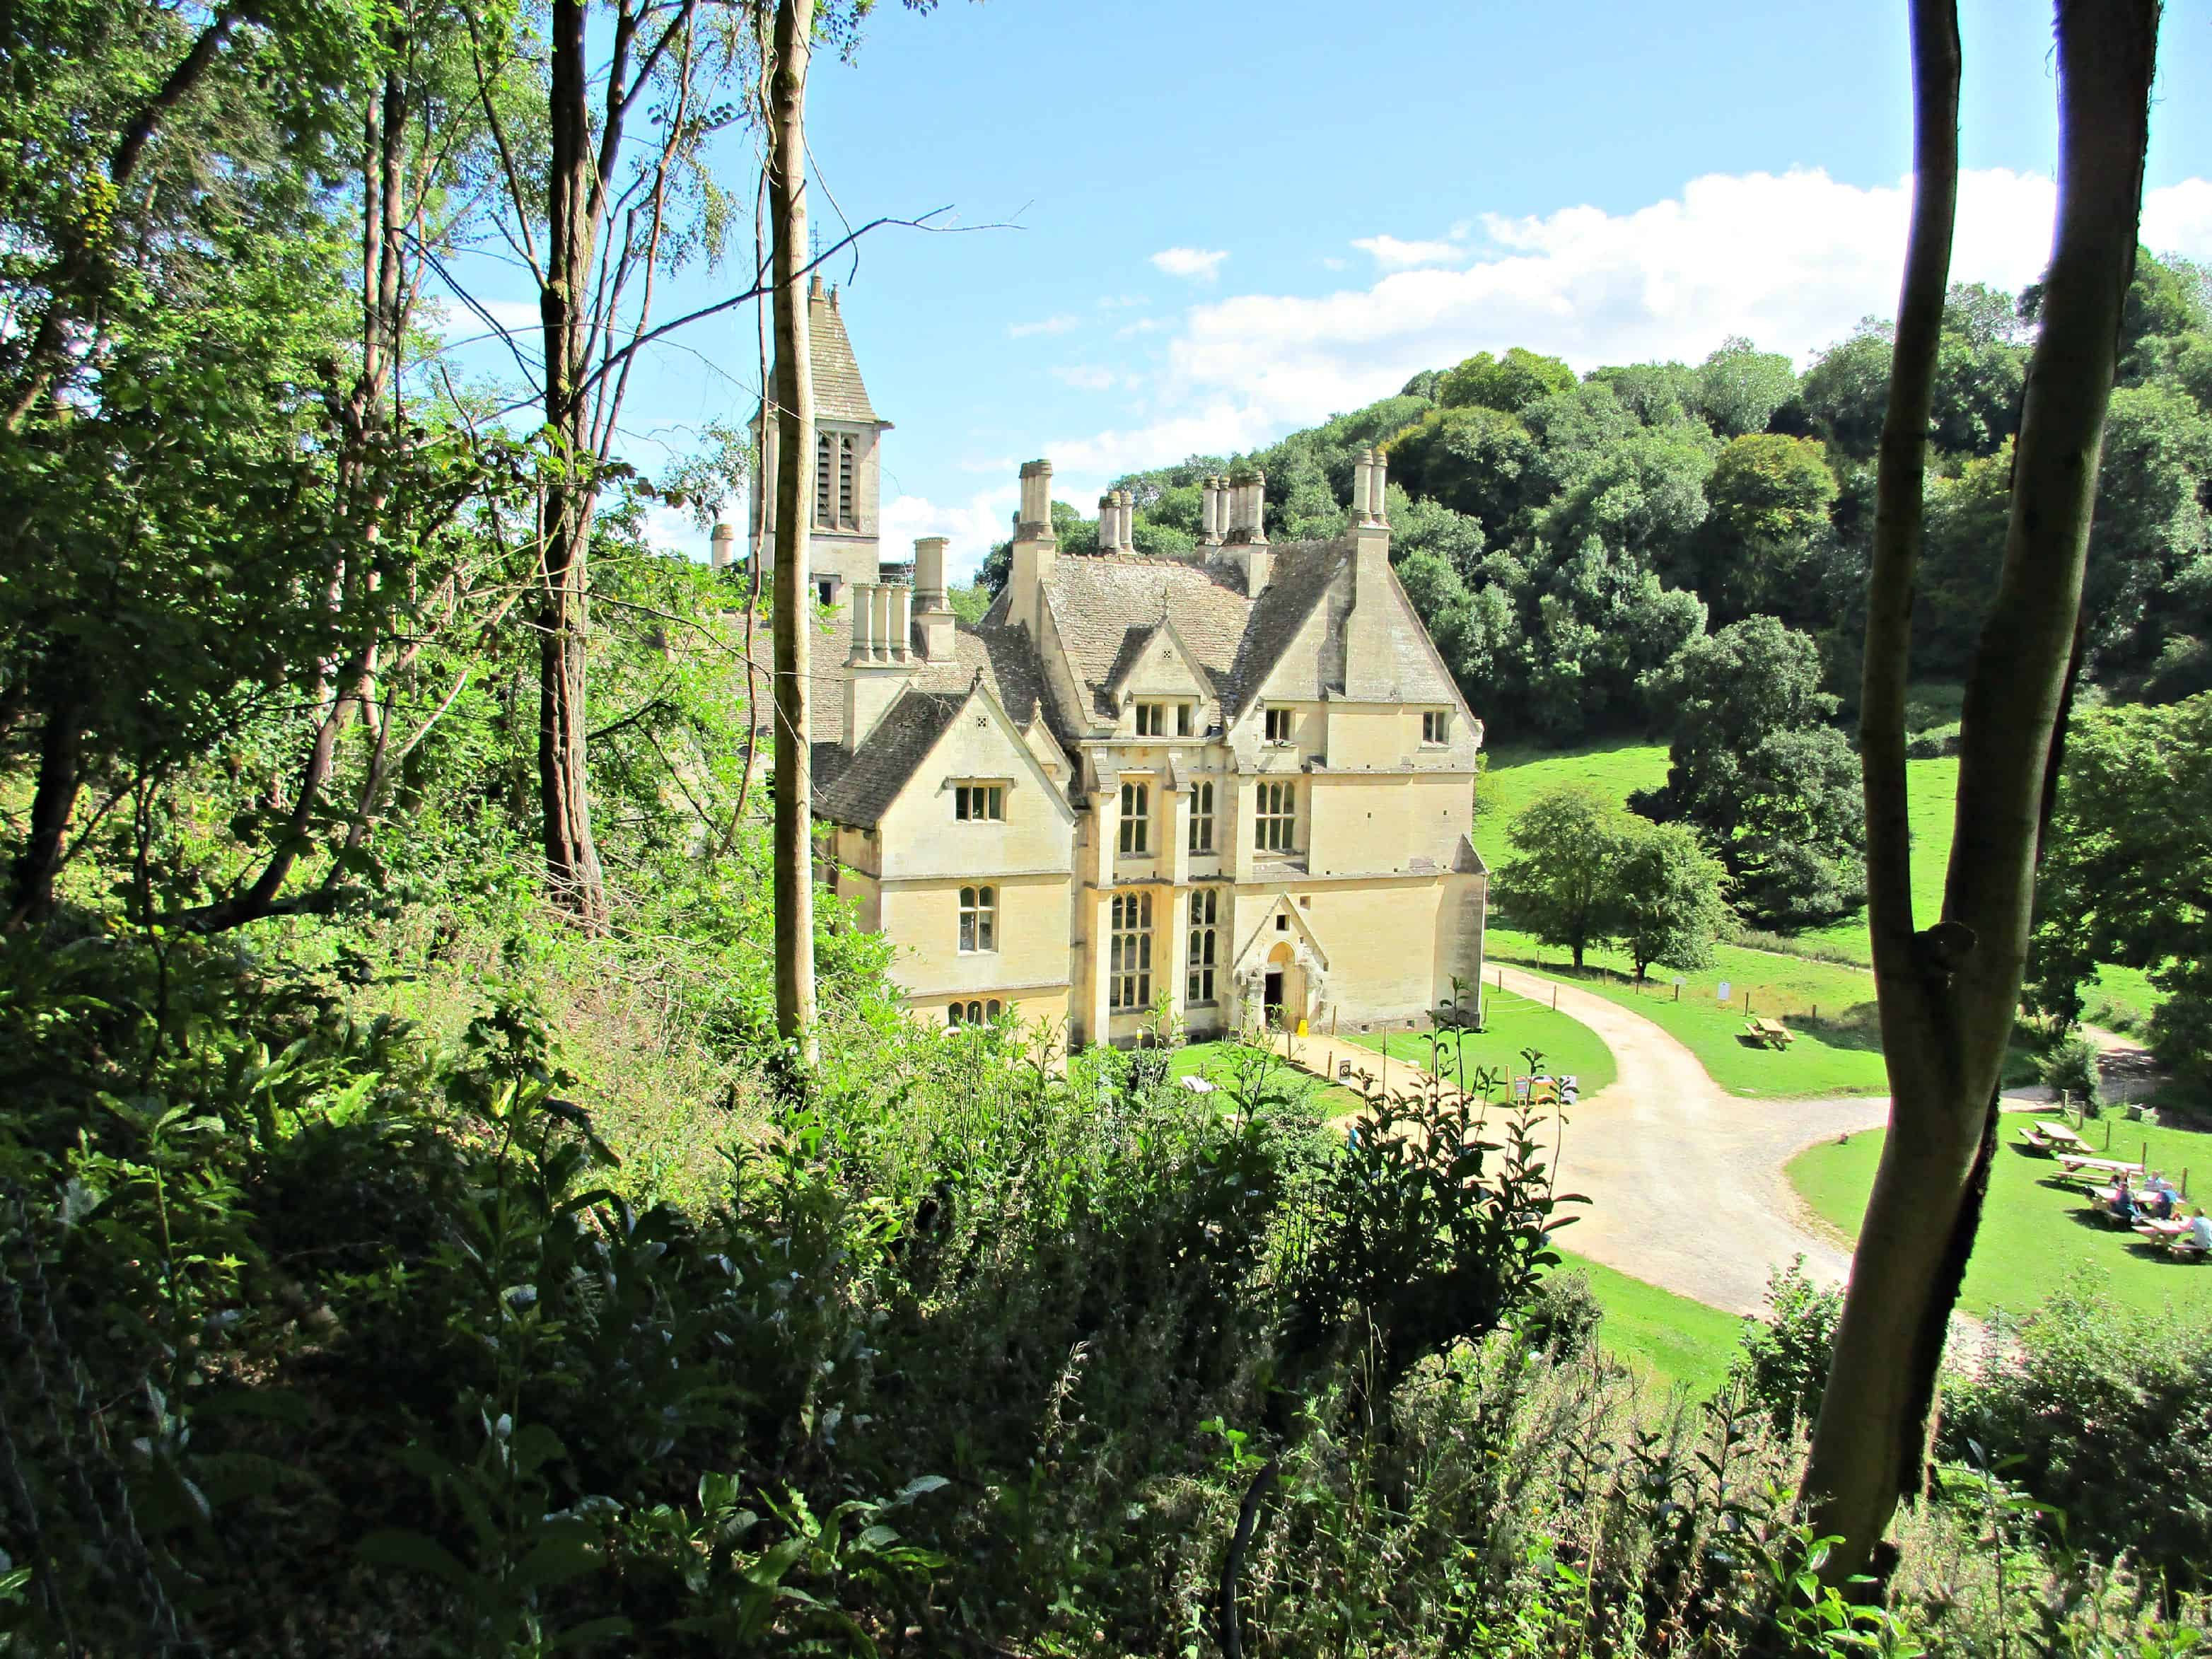 Woodchester Mansion is a Grade I listed house built in a Victorian Gothic style, and situated in a secluded, wooded valley, known as Woodchester Park. This fascinating house was never finished, so offers visitors the opportunity to see how a house of this period was constructed.